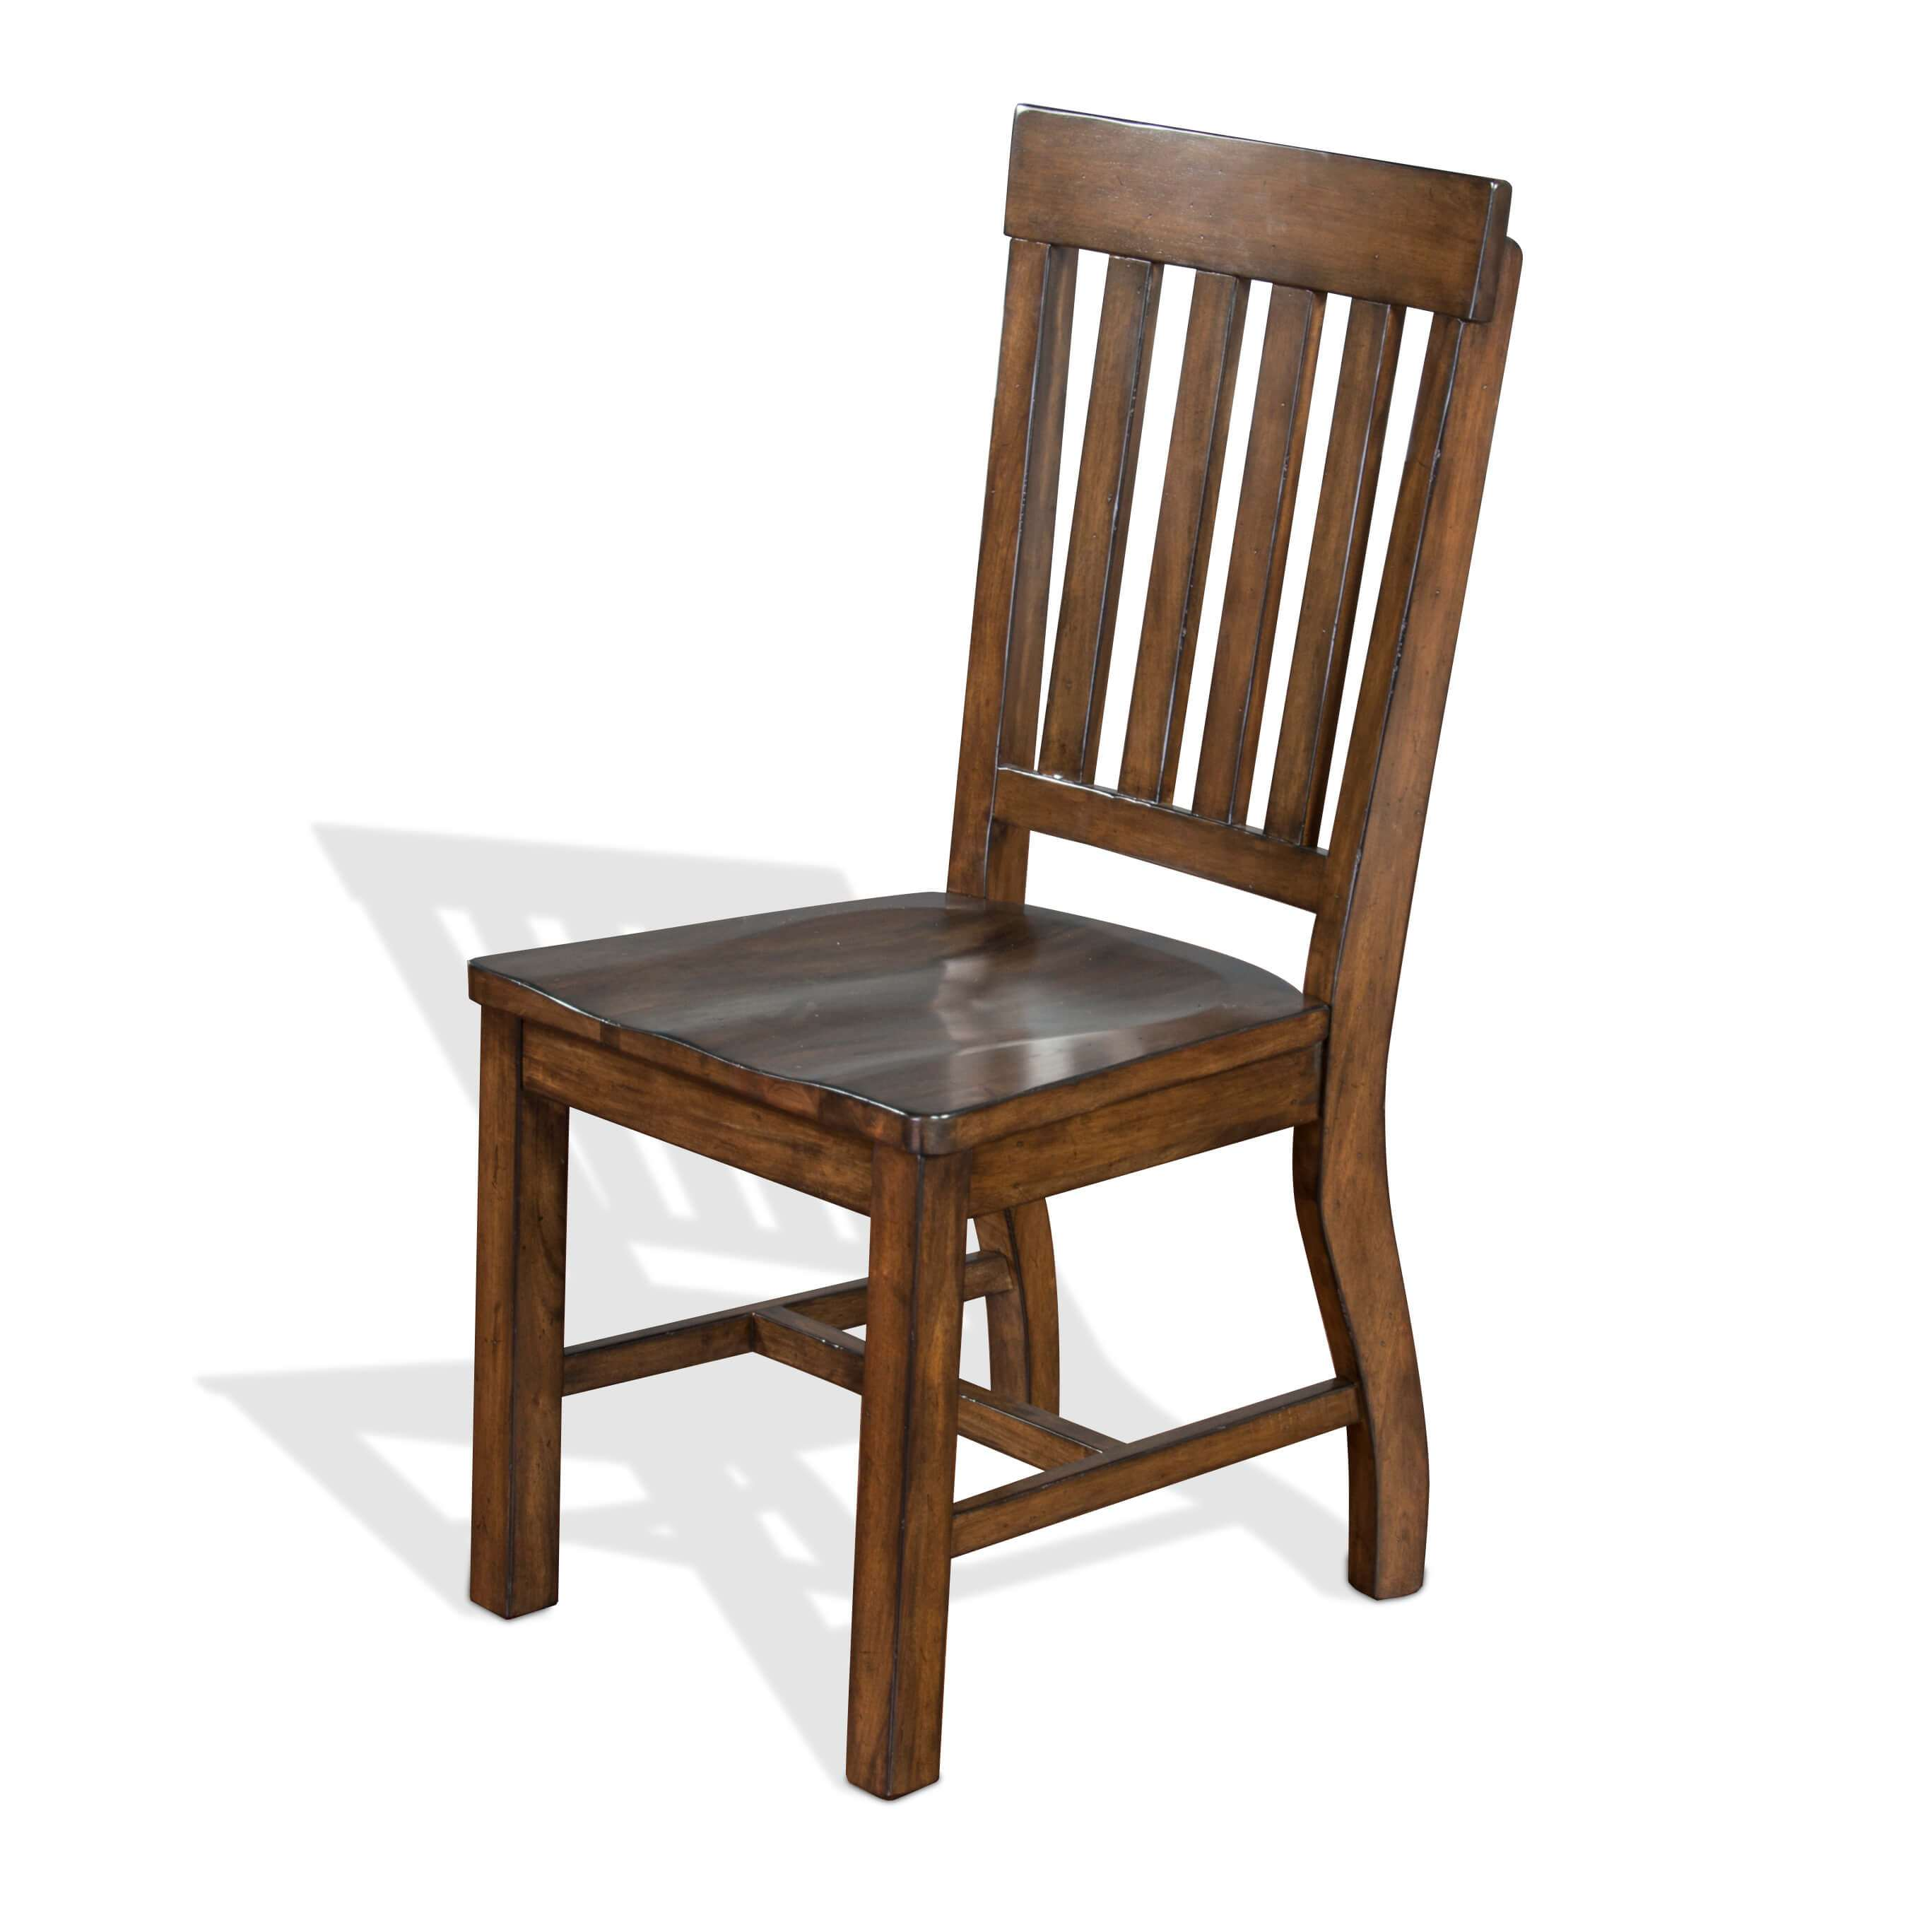 Rustic Wood Chairs Asheville Rustic Wood Dining Chair